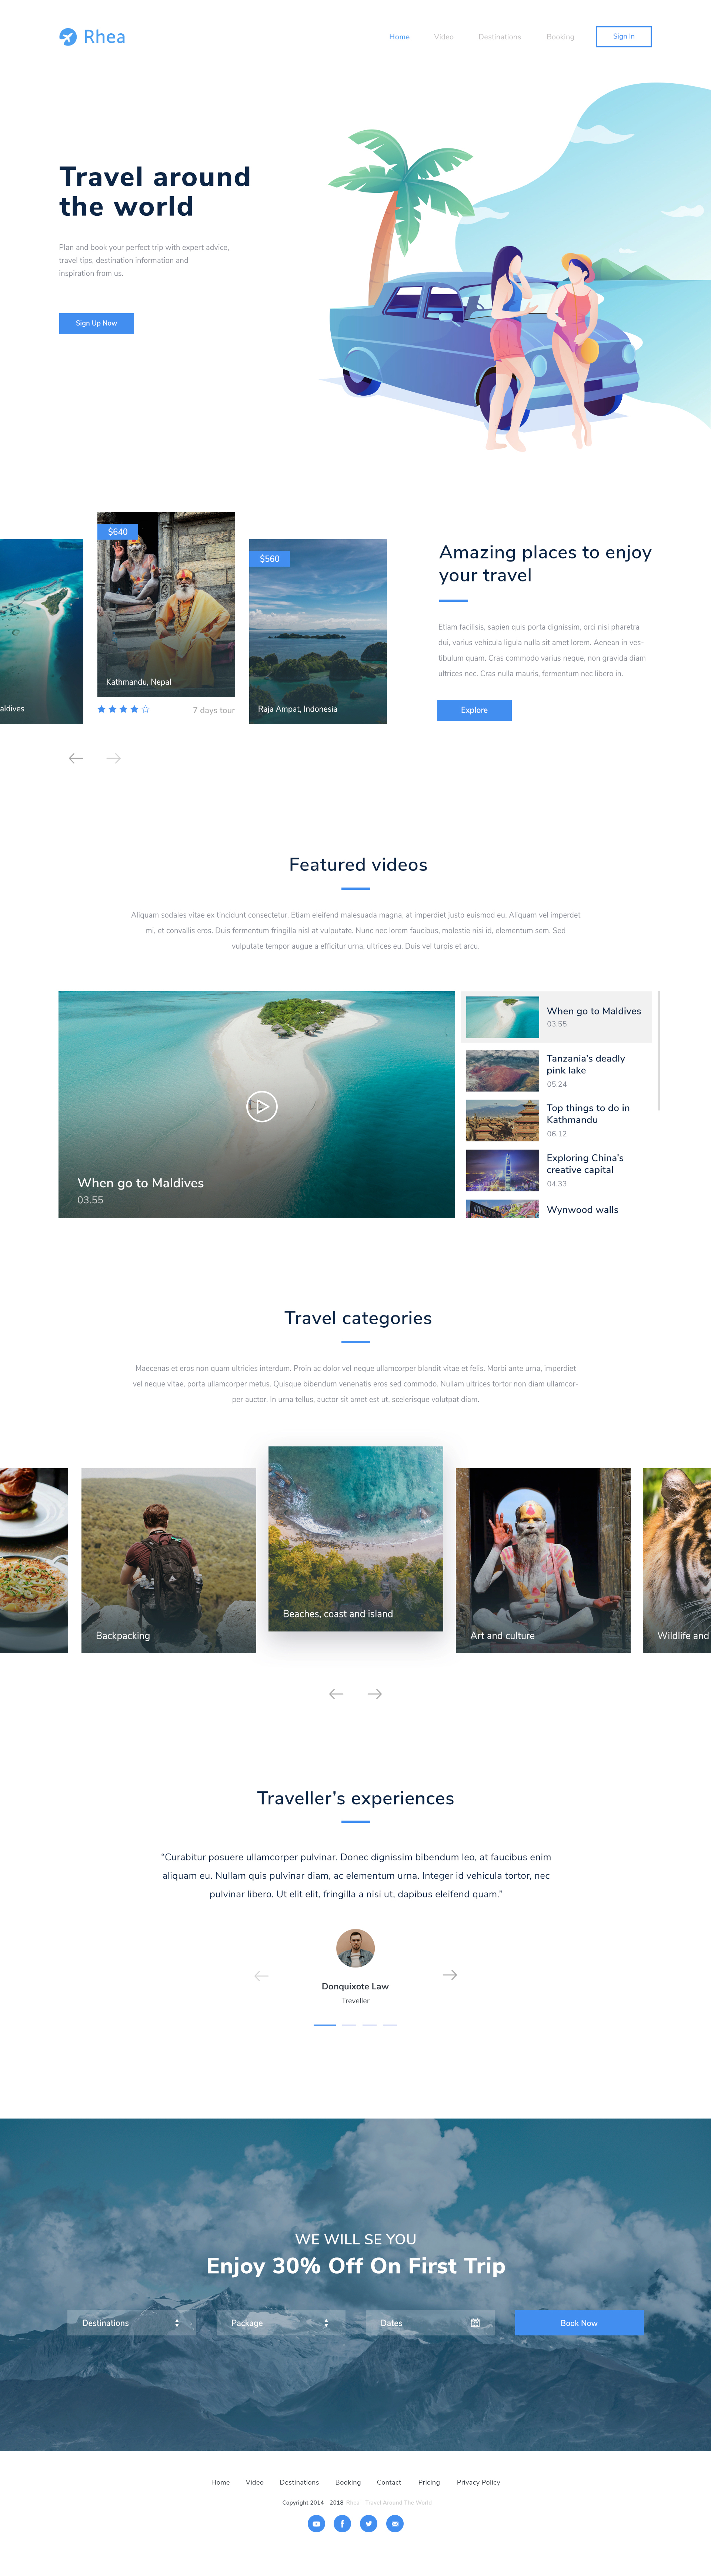 Rhea - Travel Landing Page - Elegant and clean landing page design with cool illustration.